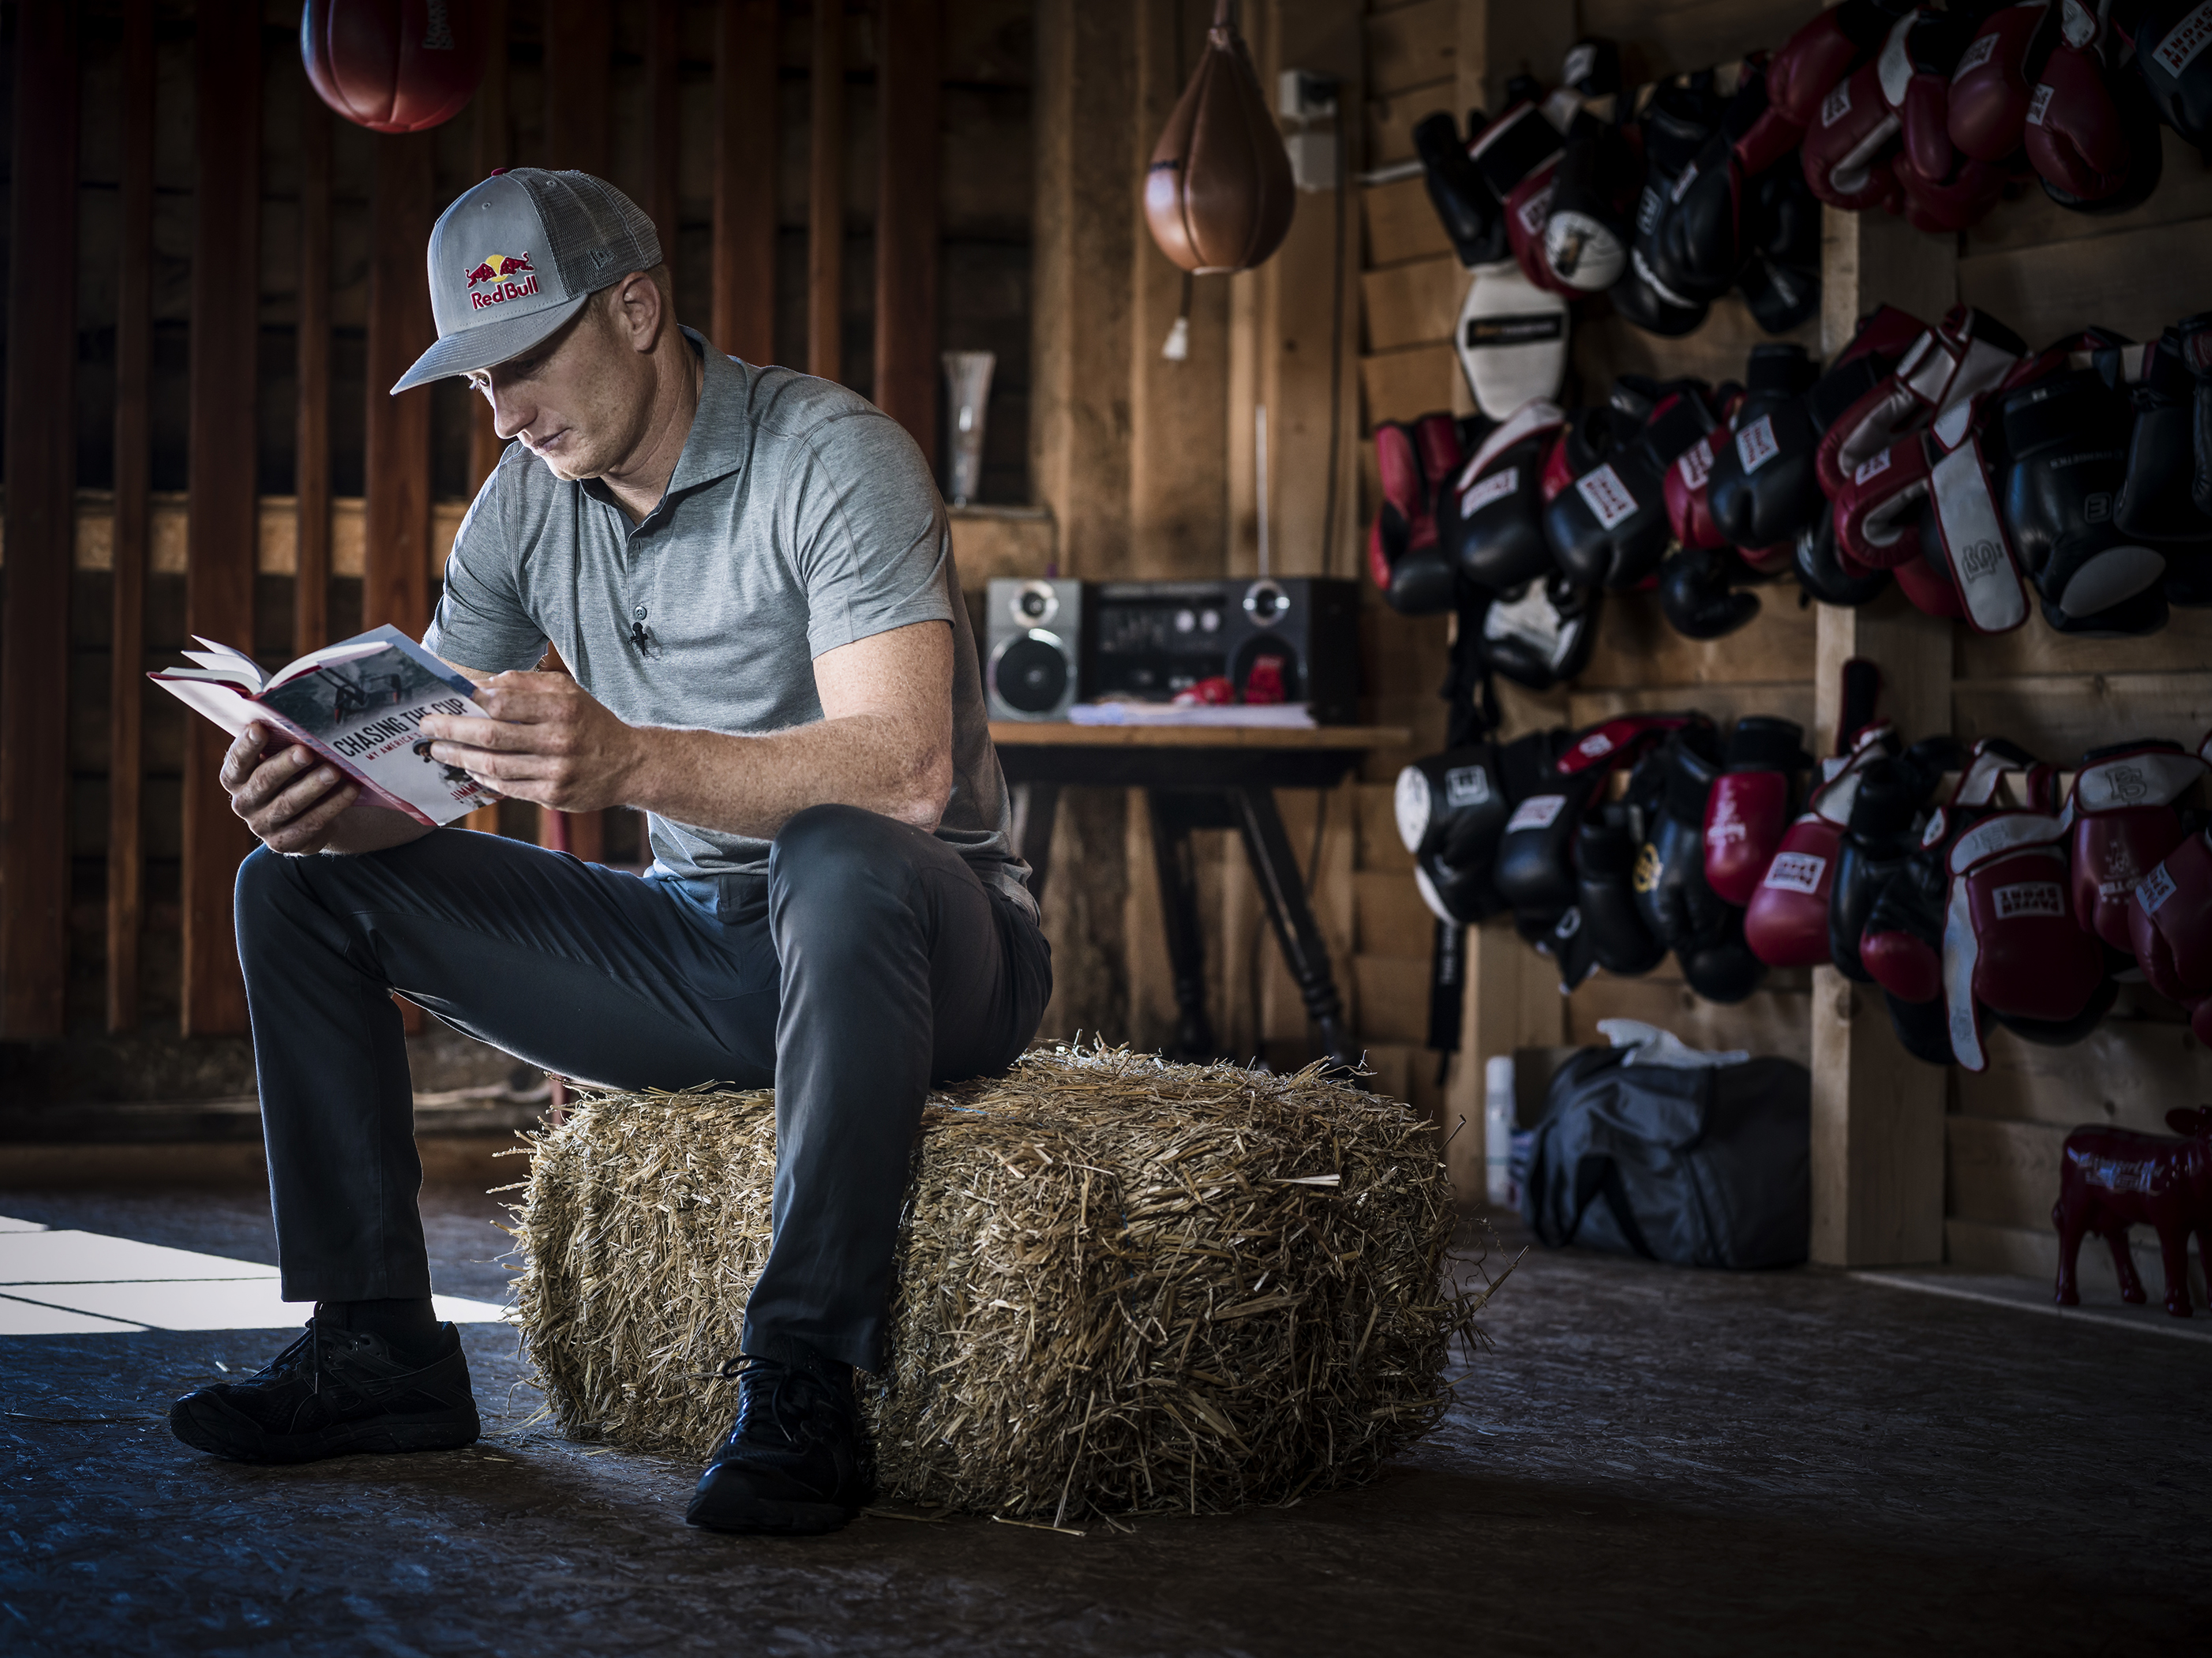 Jimmy Spithill, portrait and book presentation in the King5 resort in Hallein, Salzburg, August 29, 2017. // Martin Steinthaler / Red Bull Content Pool // SI201709190135 // Usage for editorial use only // Please go to www.redbullcontentpool.com for further information. //